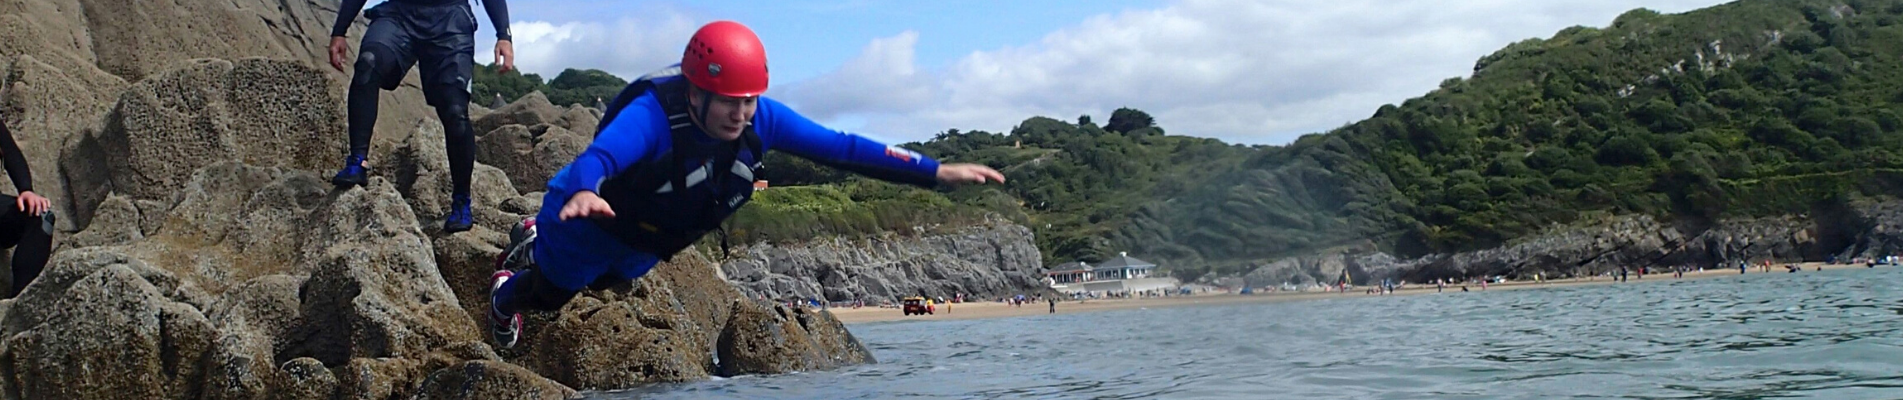 Coasteering South Wales